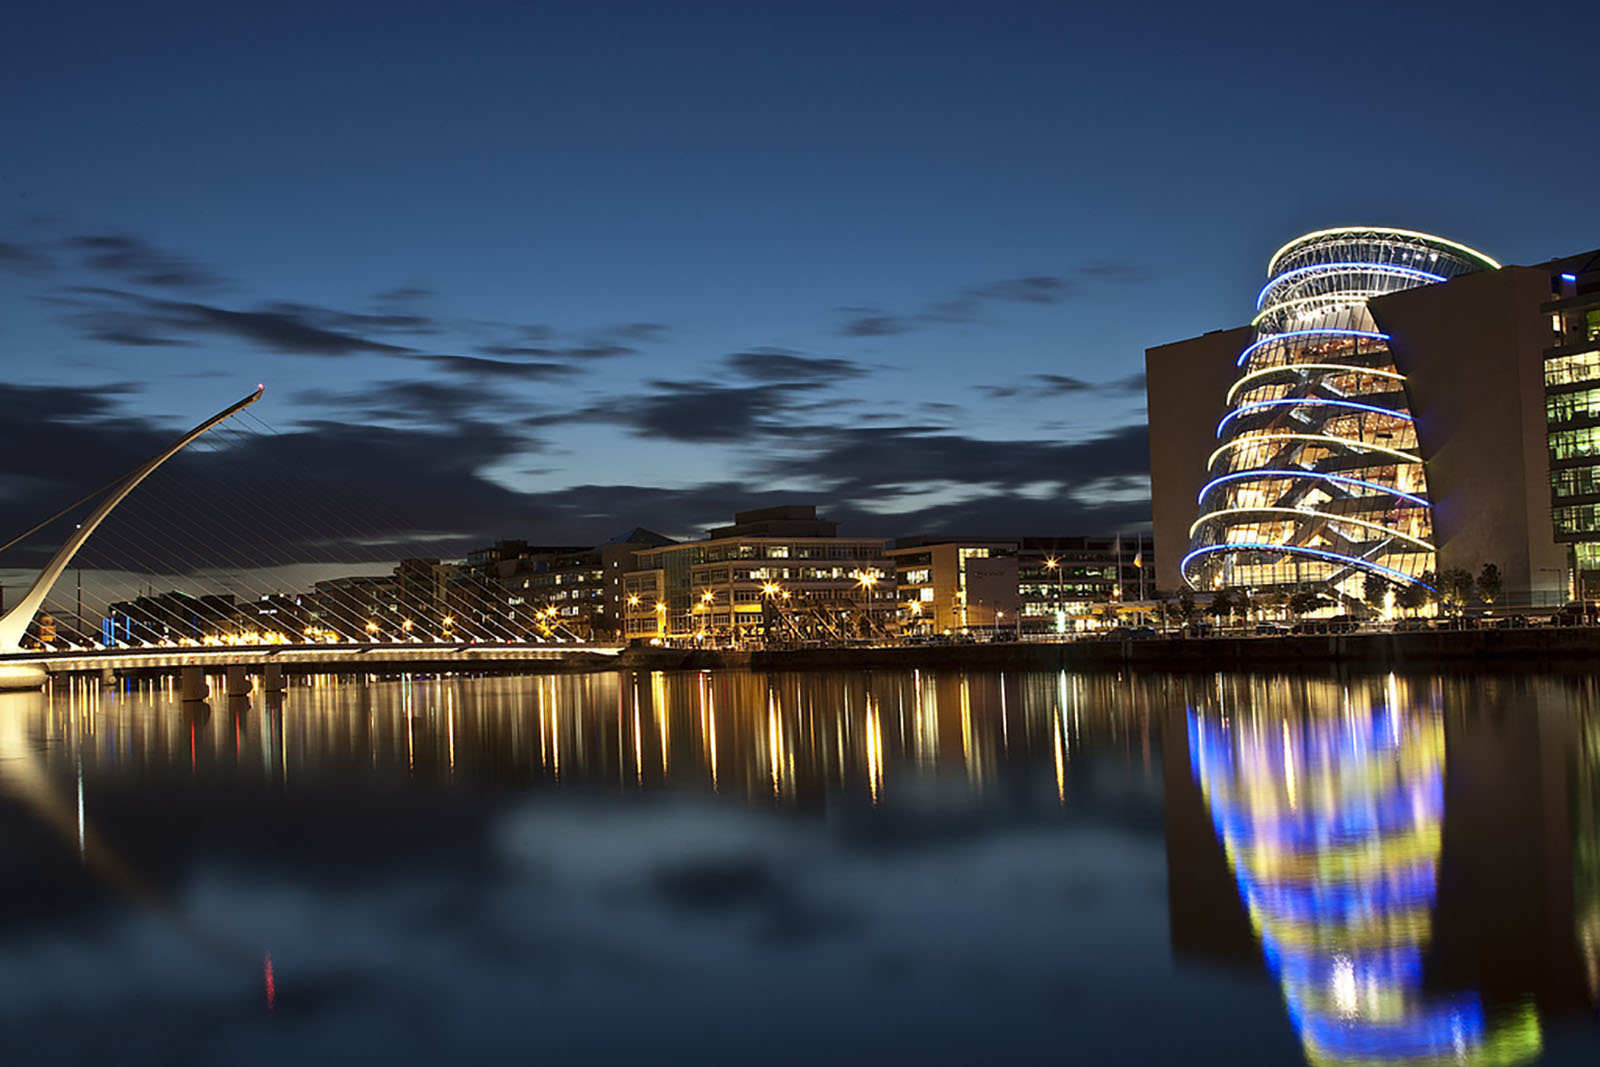 The Convention Centre Dublin (CCD) - a large glass cylindrical building situated on Dublin's River Liffey.